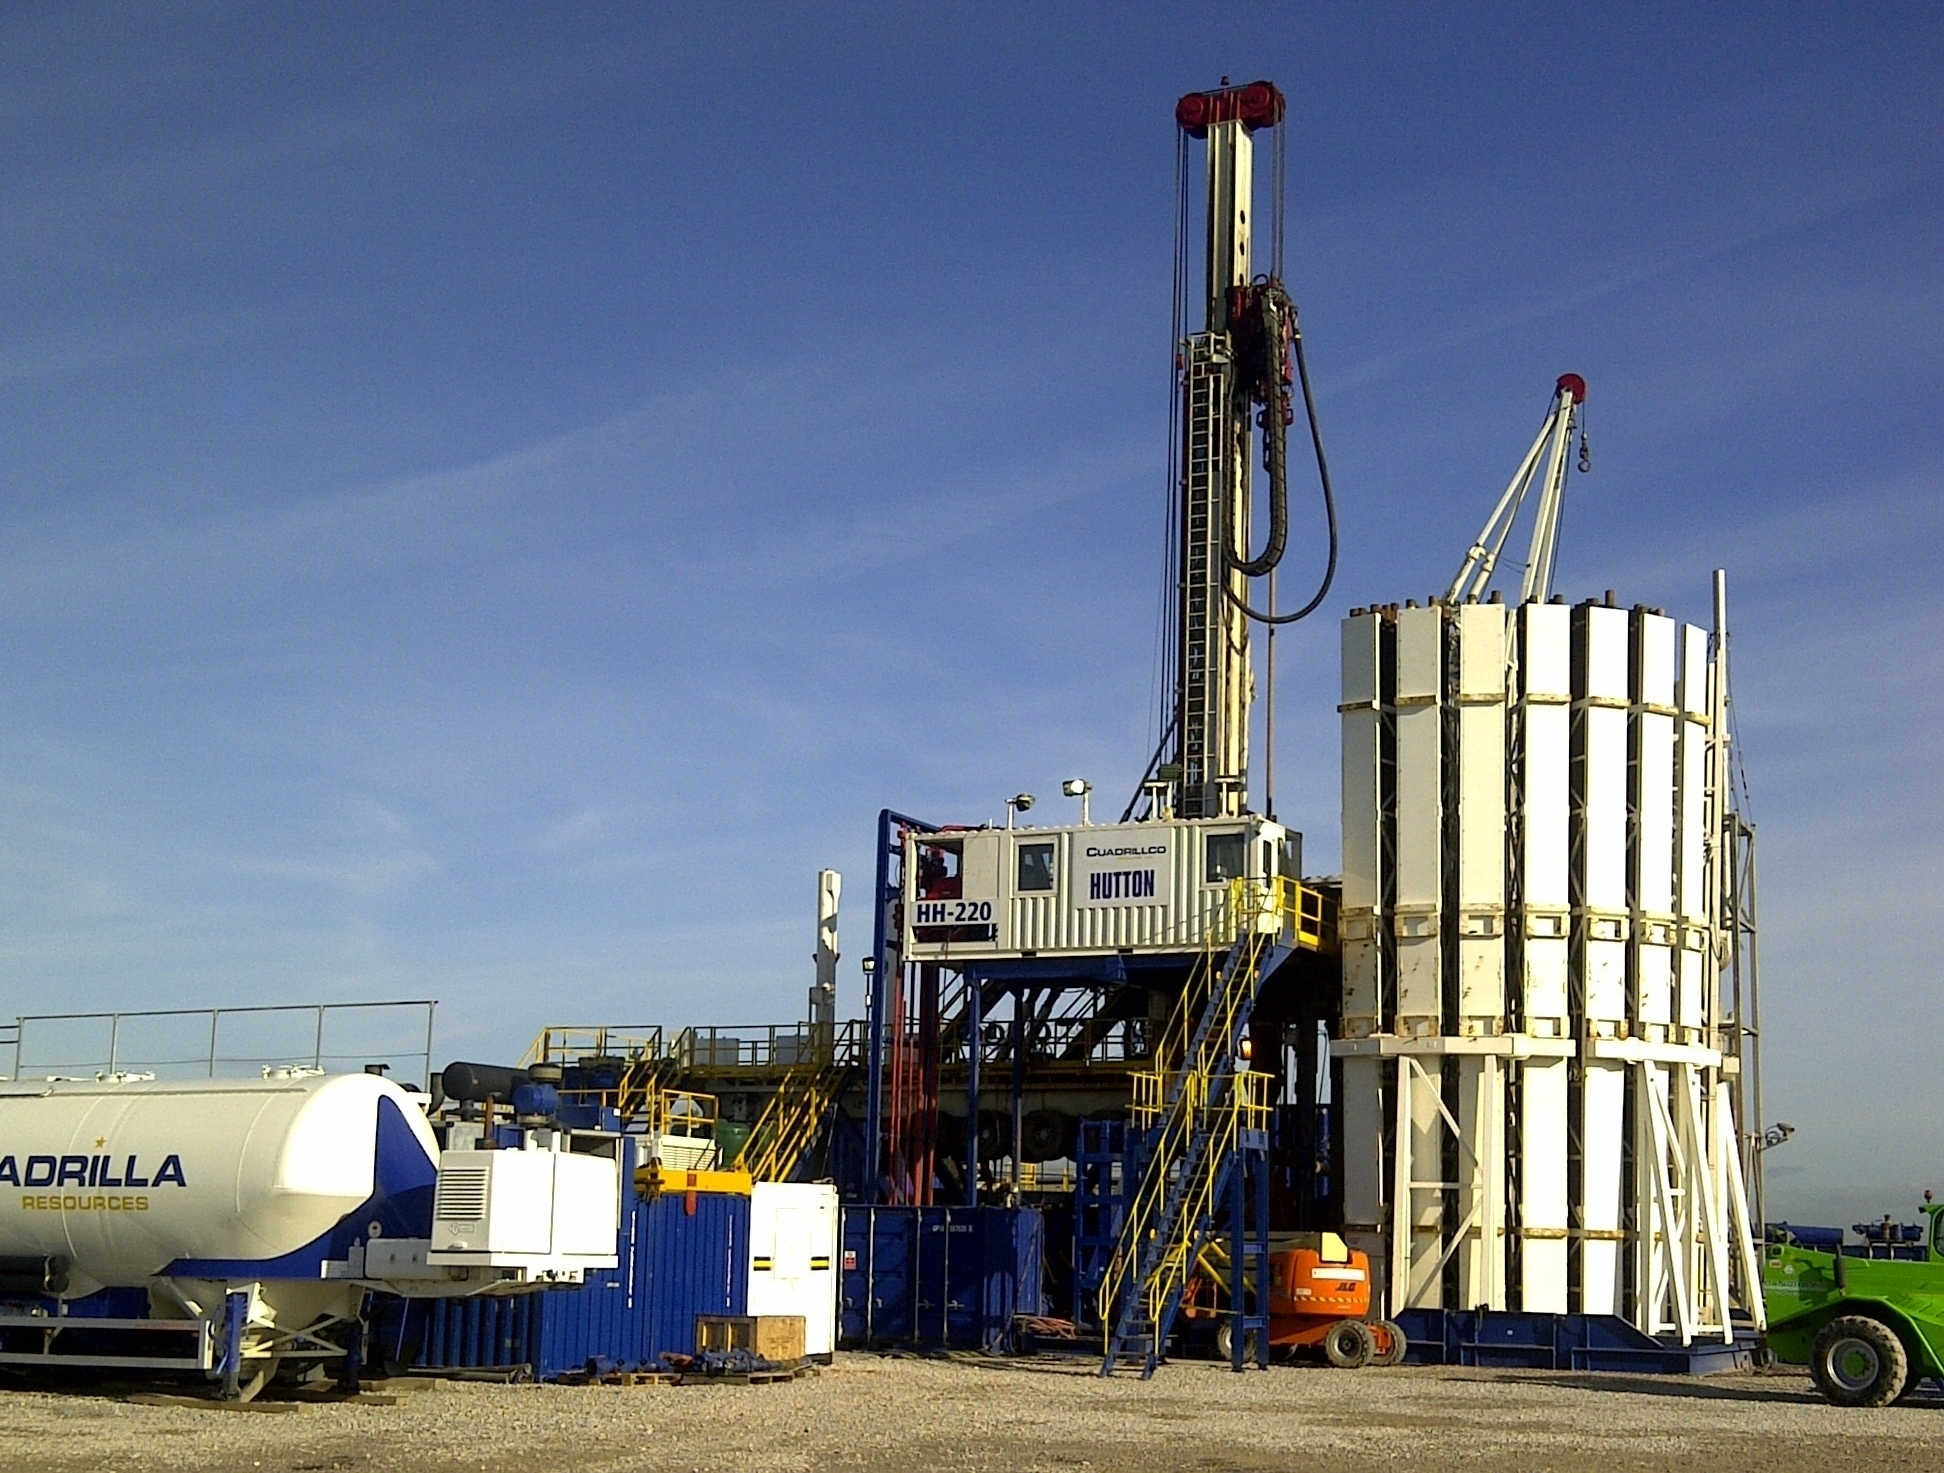 The Cuadrilla plans were rejected